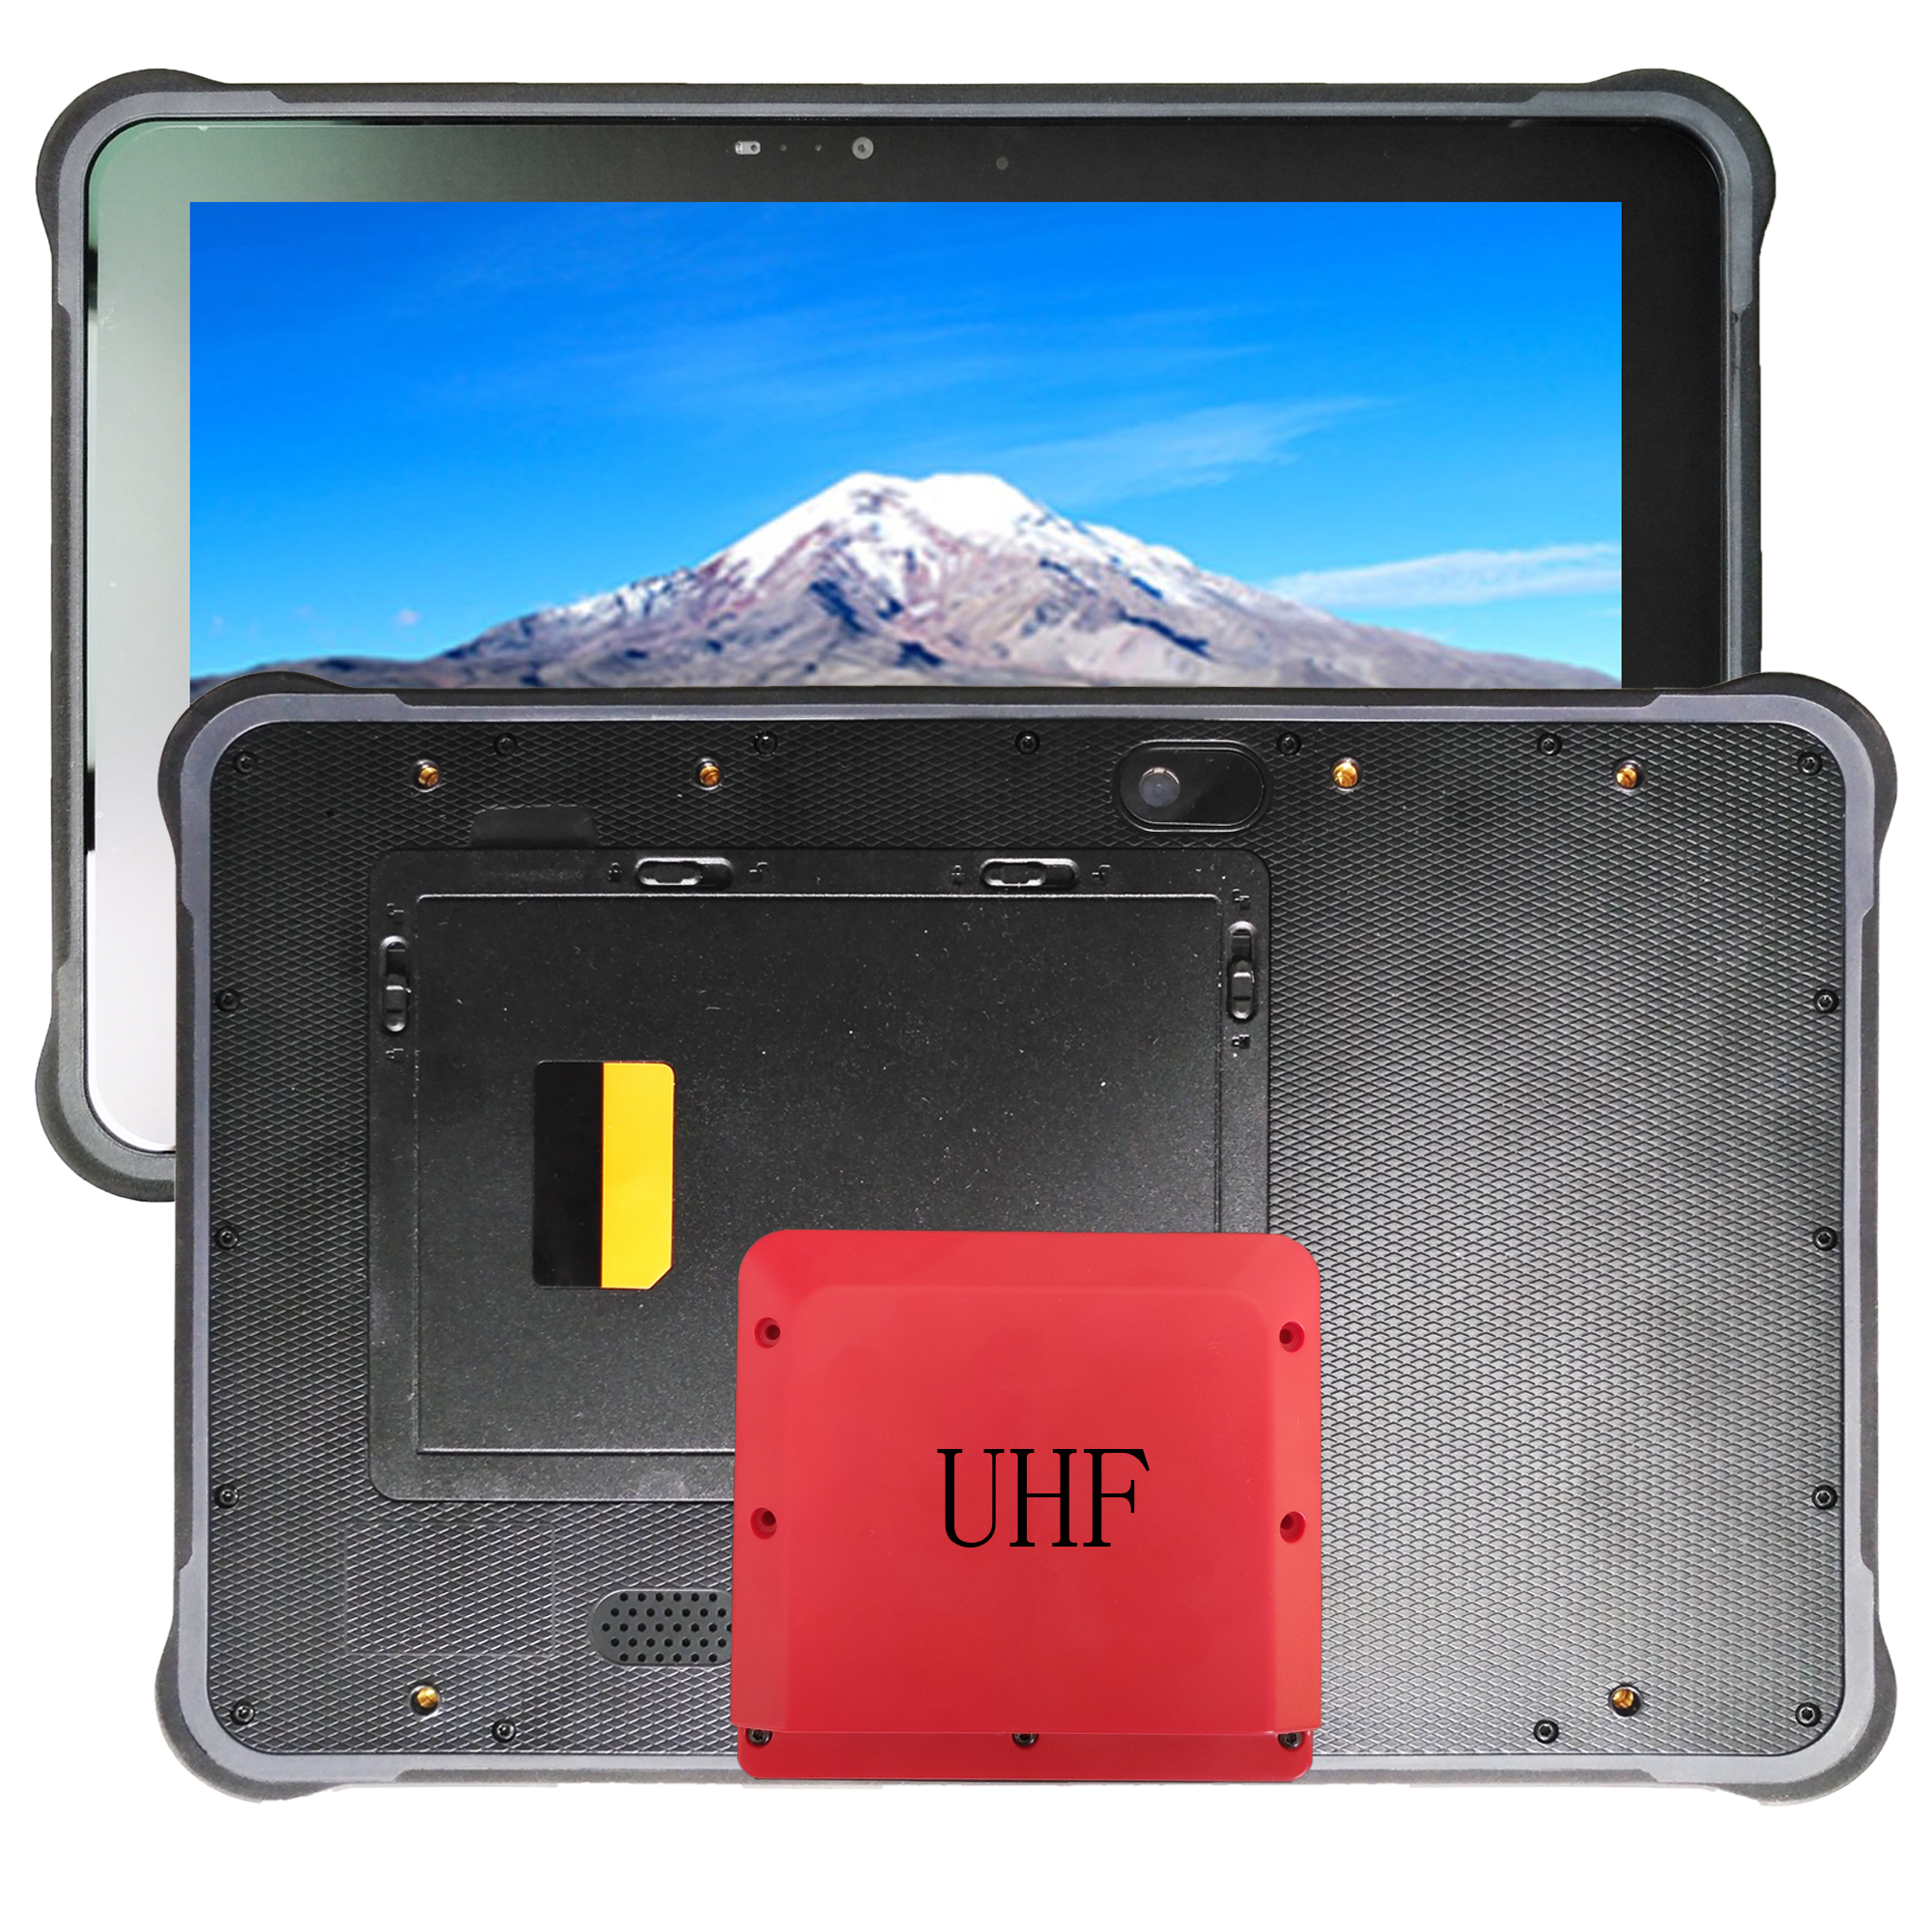 UHF 10.1 inch hot swap android 7.0 rugged tablet